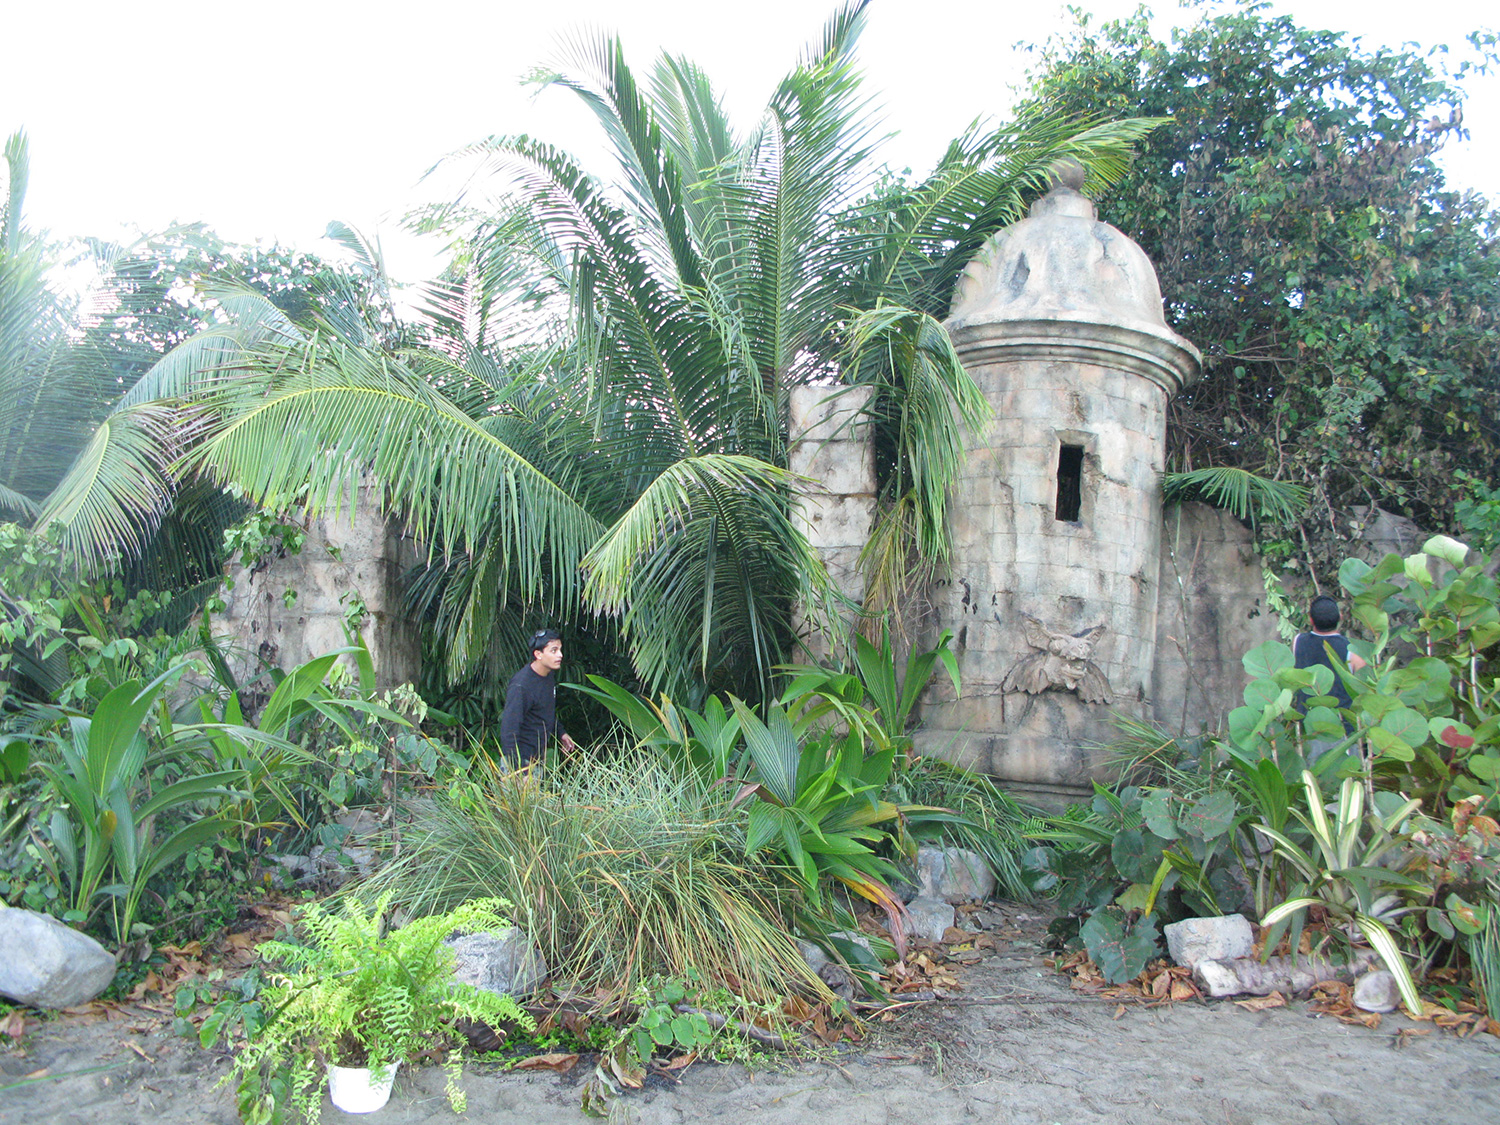 """A photo of the completed ruined """"Garita"""" set on a beach on the edge of a dense jungle in Puerto Rico from """"The Wizards of Waverly Place: The Movie"""" (2009)."""